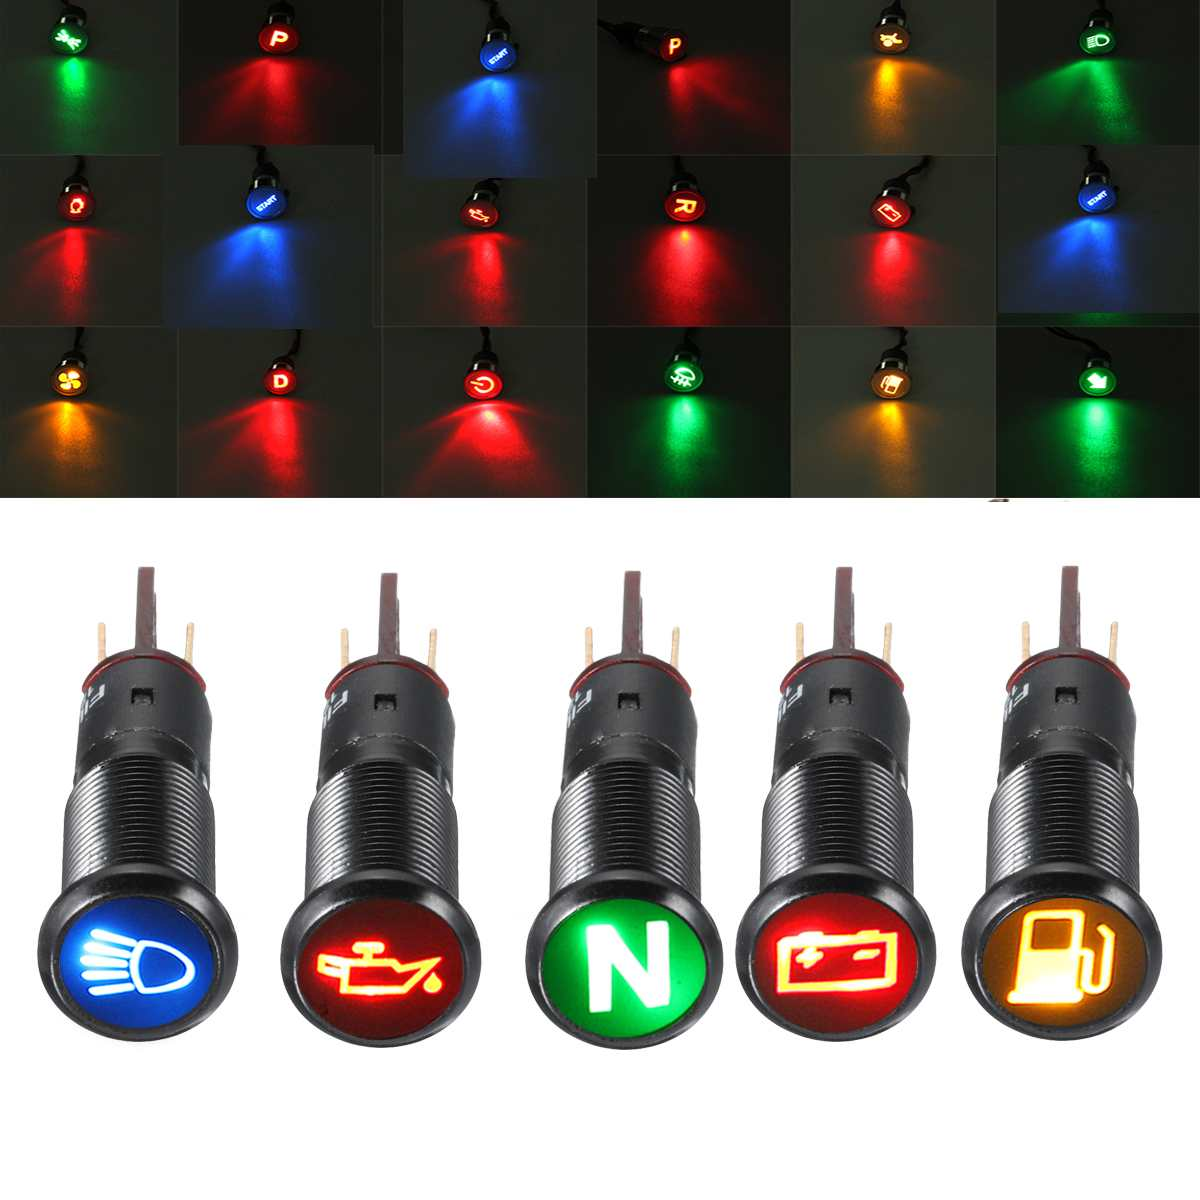 6-36V 14MM LED Indicator Light Lamp Dash Panel Warning Light Metal Push Button Switch On Off For Car Yacht Ship Truck Van